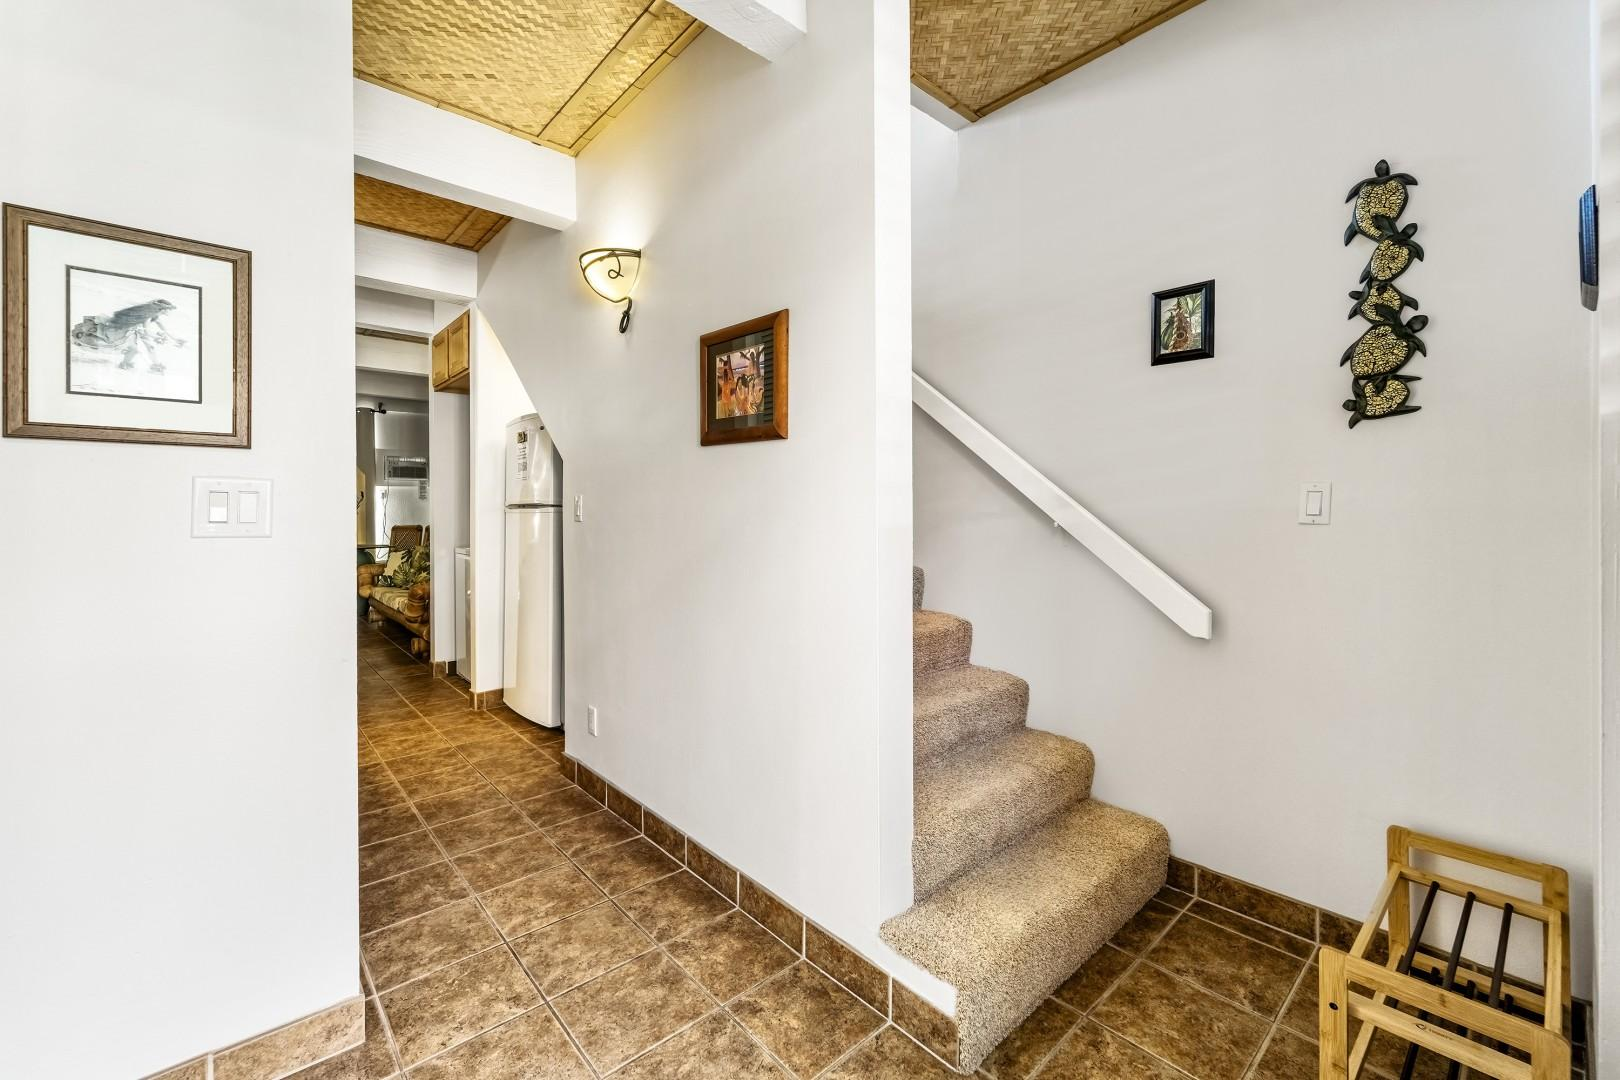 Entry to the condo and stairs leading to the bedrooms